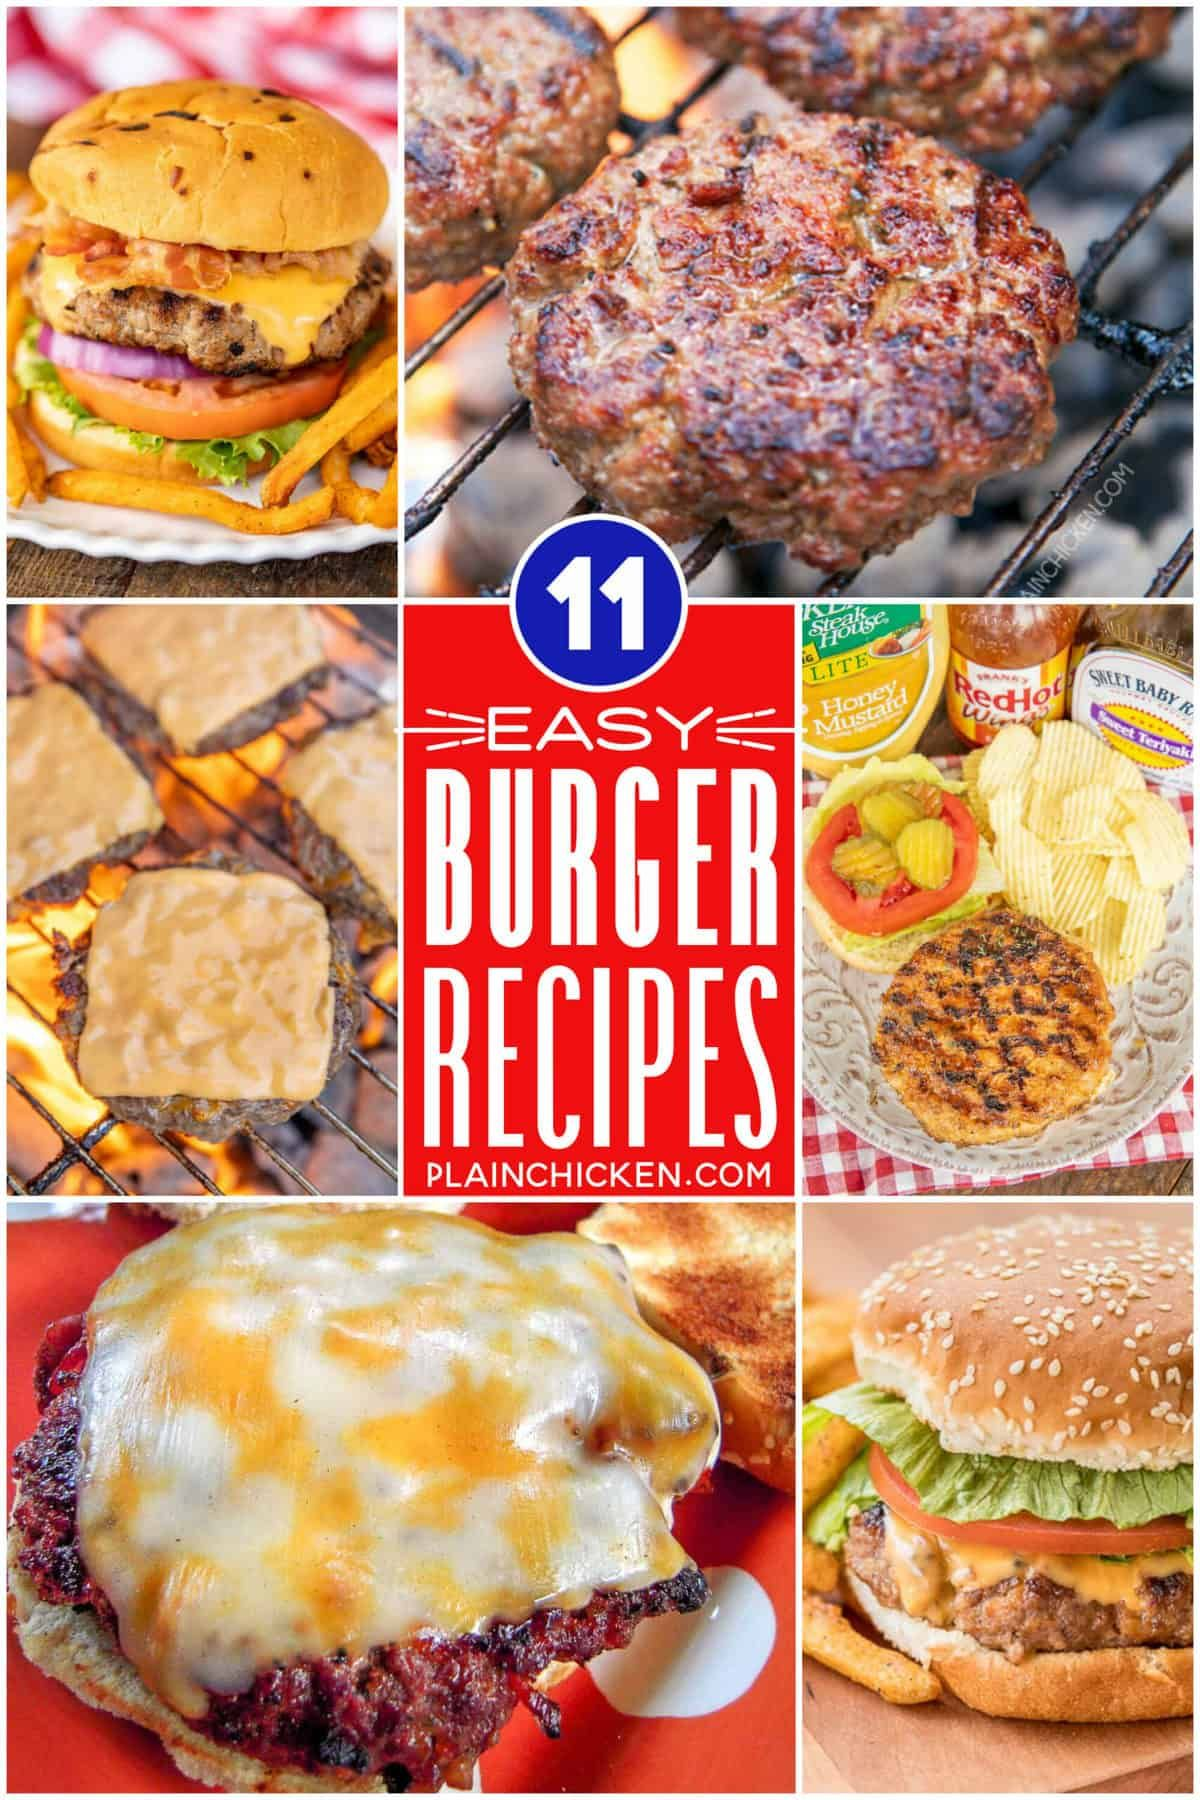 Easy Burger Recipes 11 Easy Hamburger Recipes For Summer Ground Beef And Chicken Burgers These Are The In 2020 Easy Burgers Easy Burger Recipe Plain Chicken Recipe